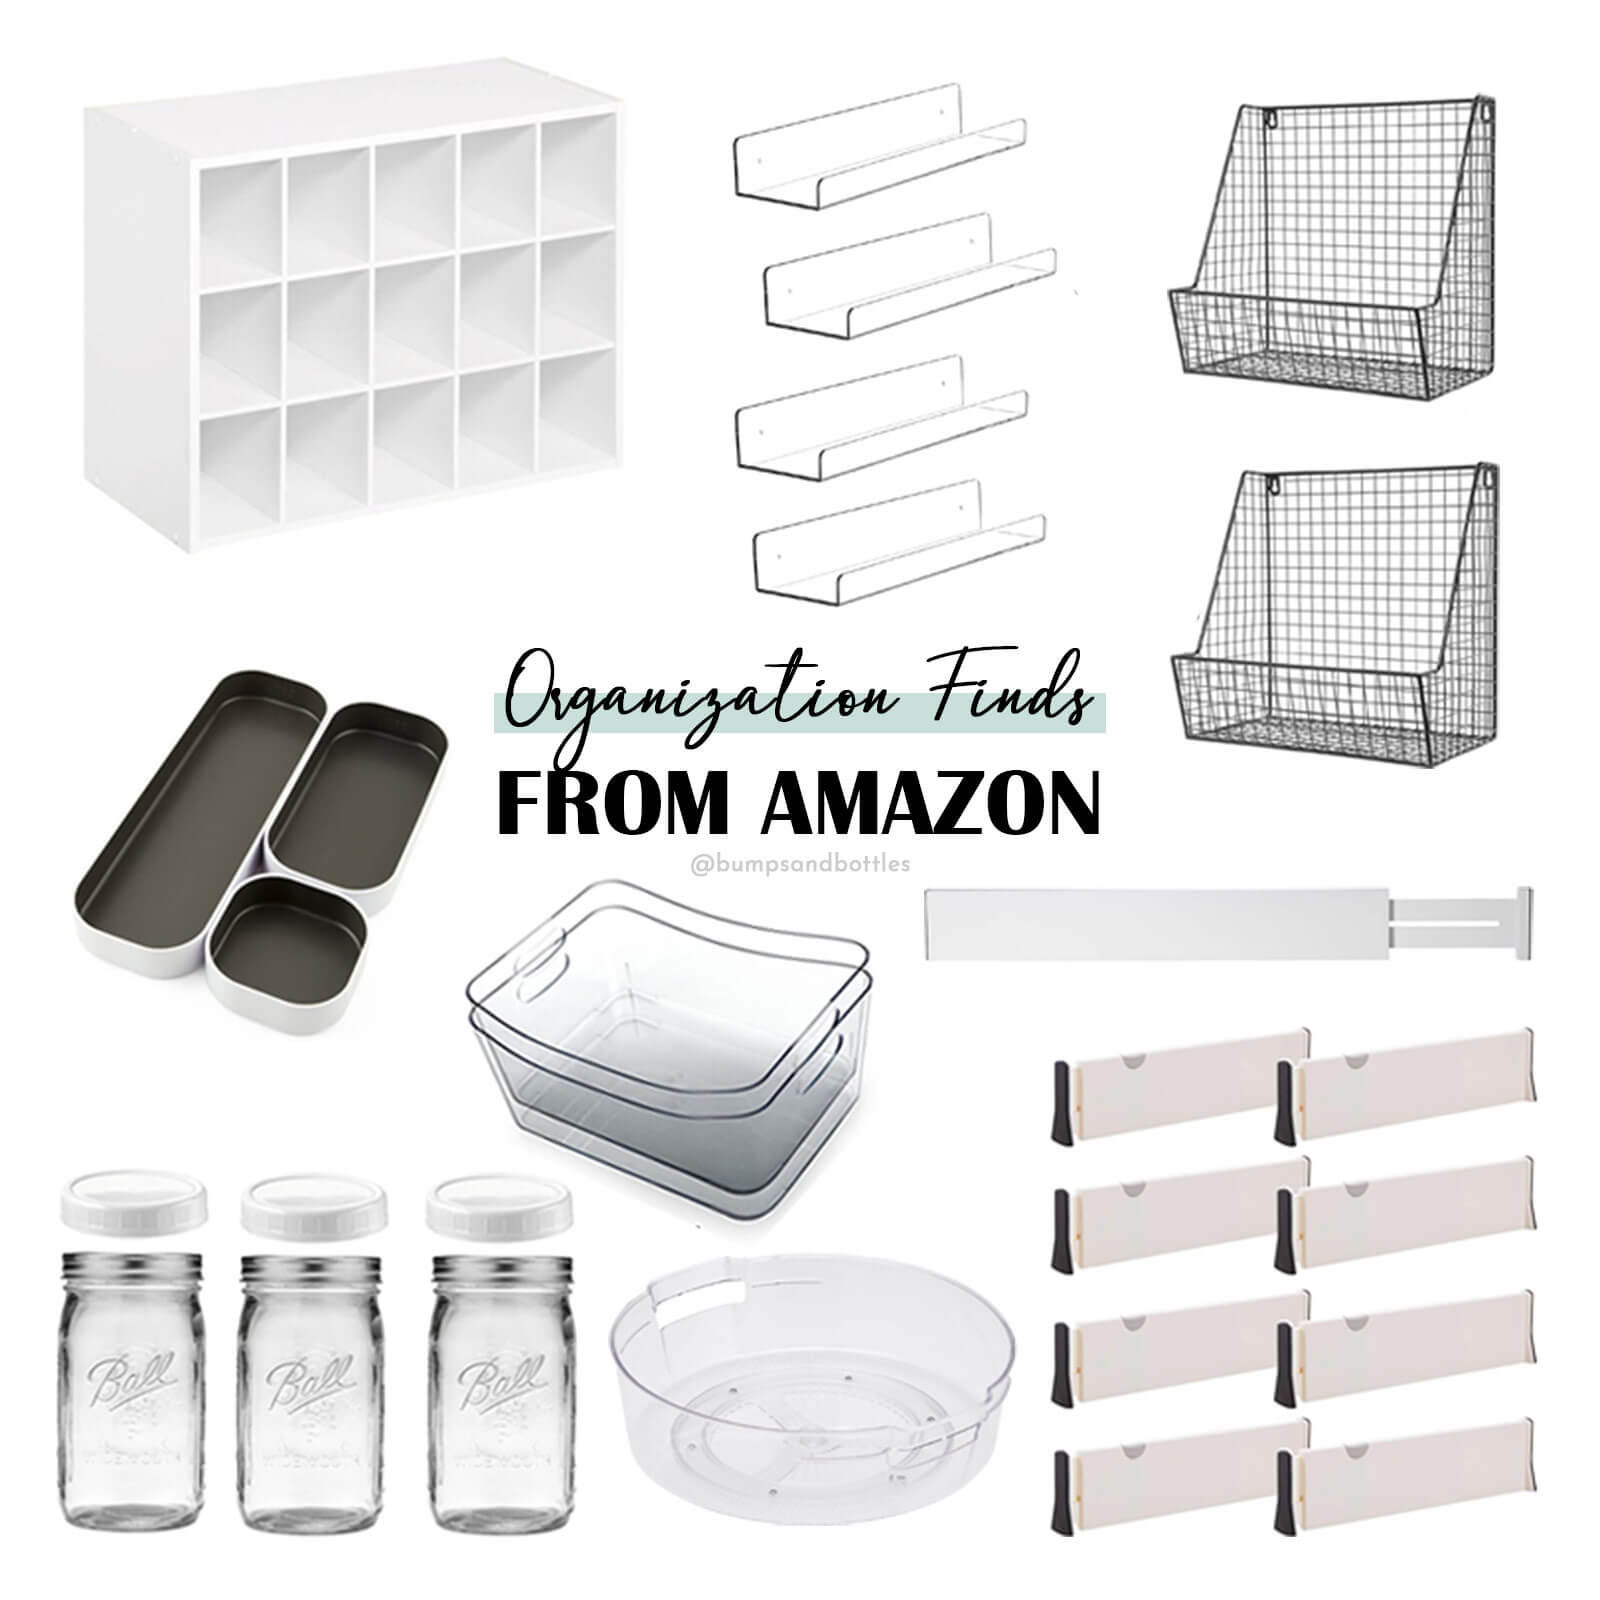 Roundup of favorite organization products